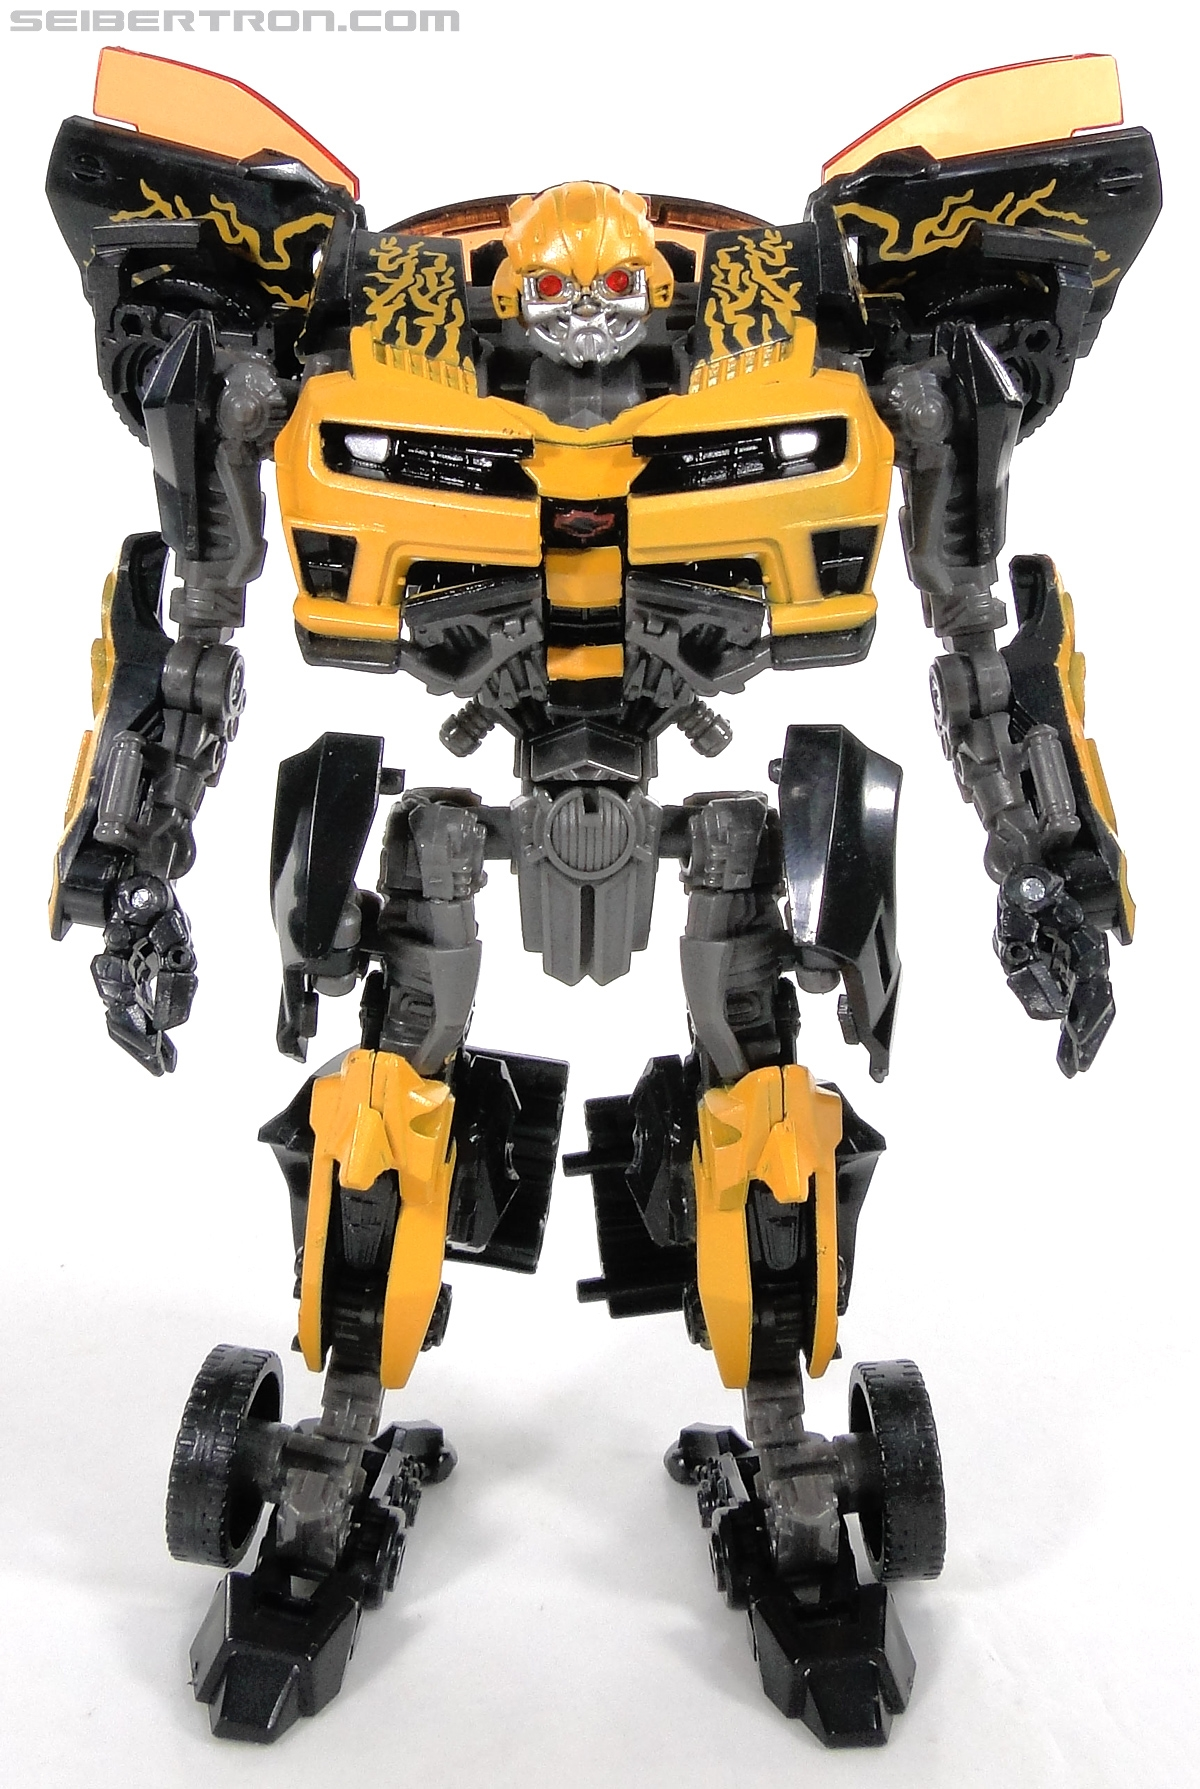 bumblebee transformer toy